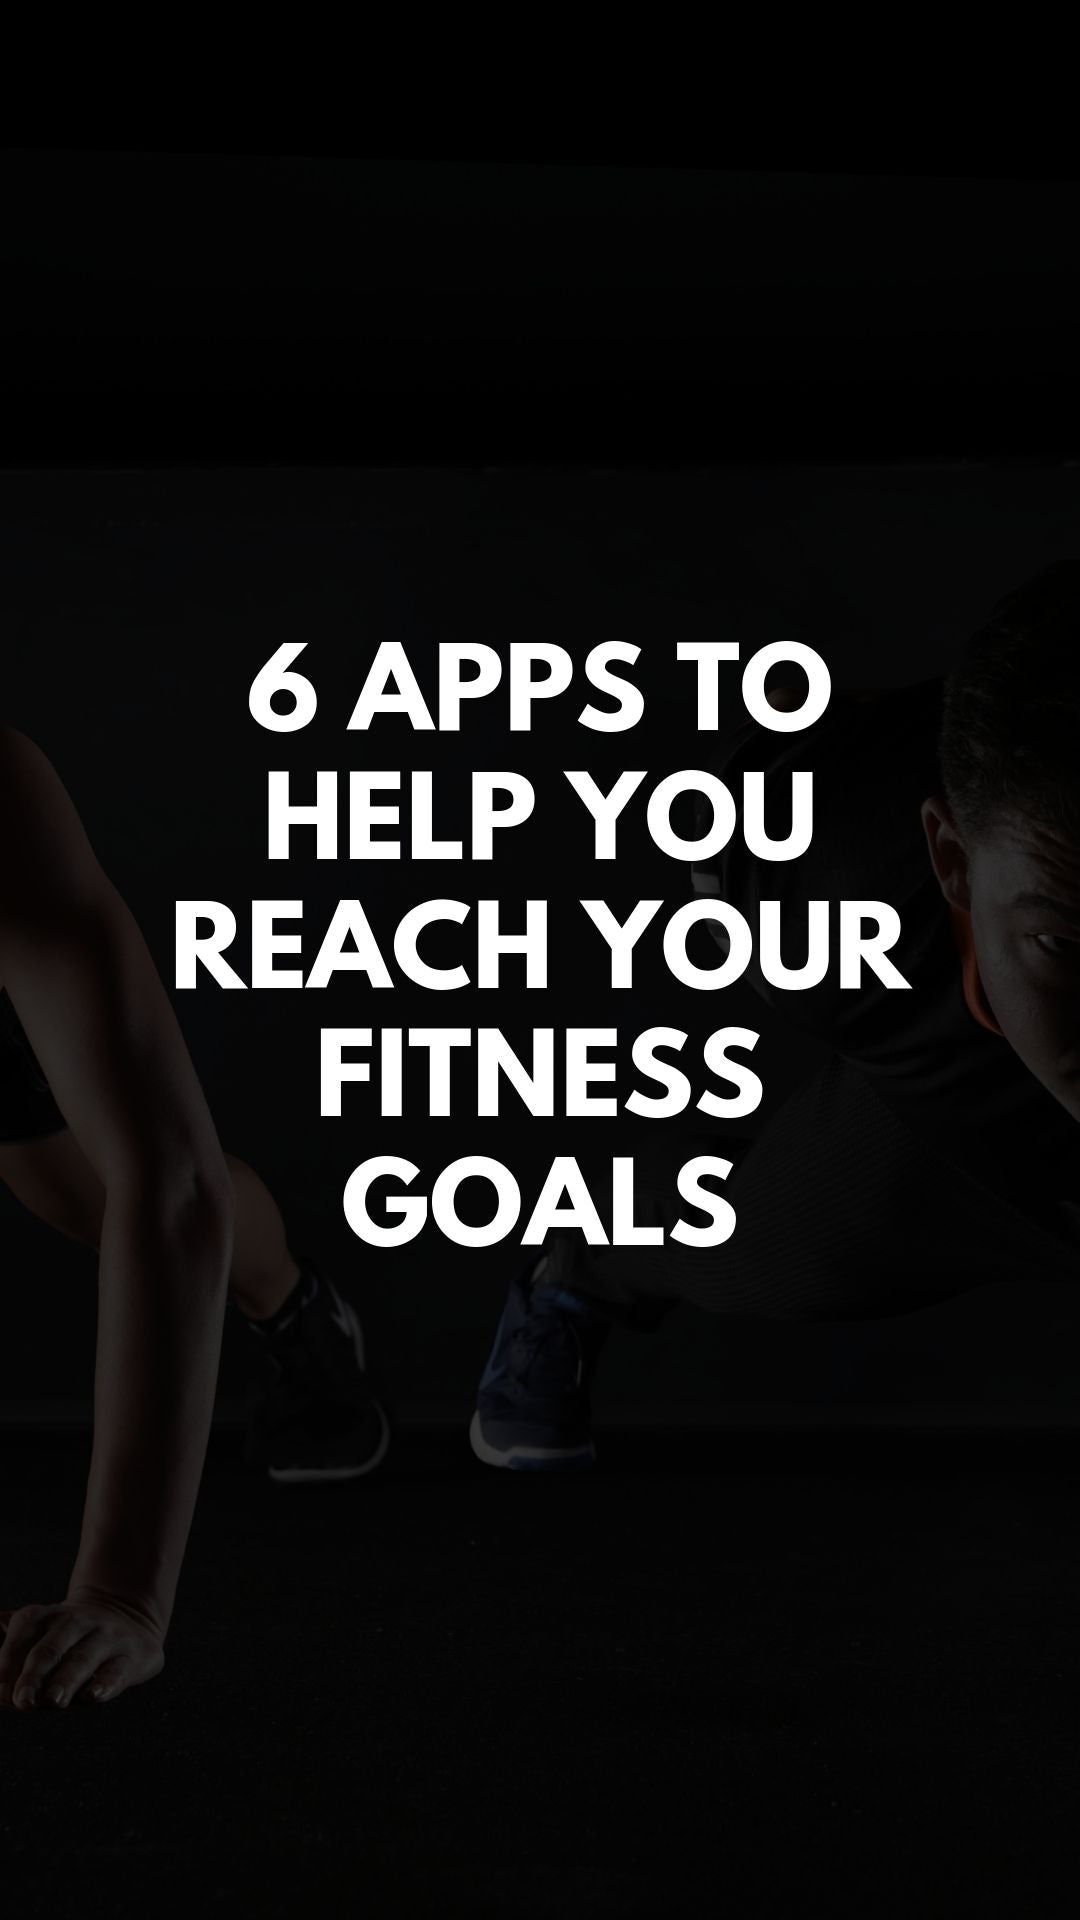 6 Apps to Help You Reach Your Fitness Goals